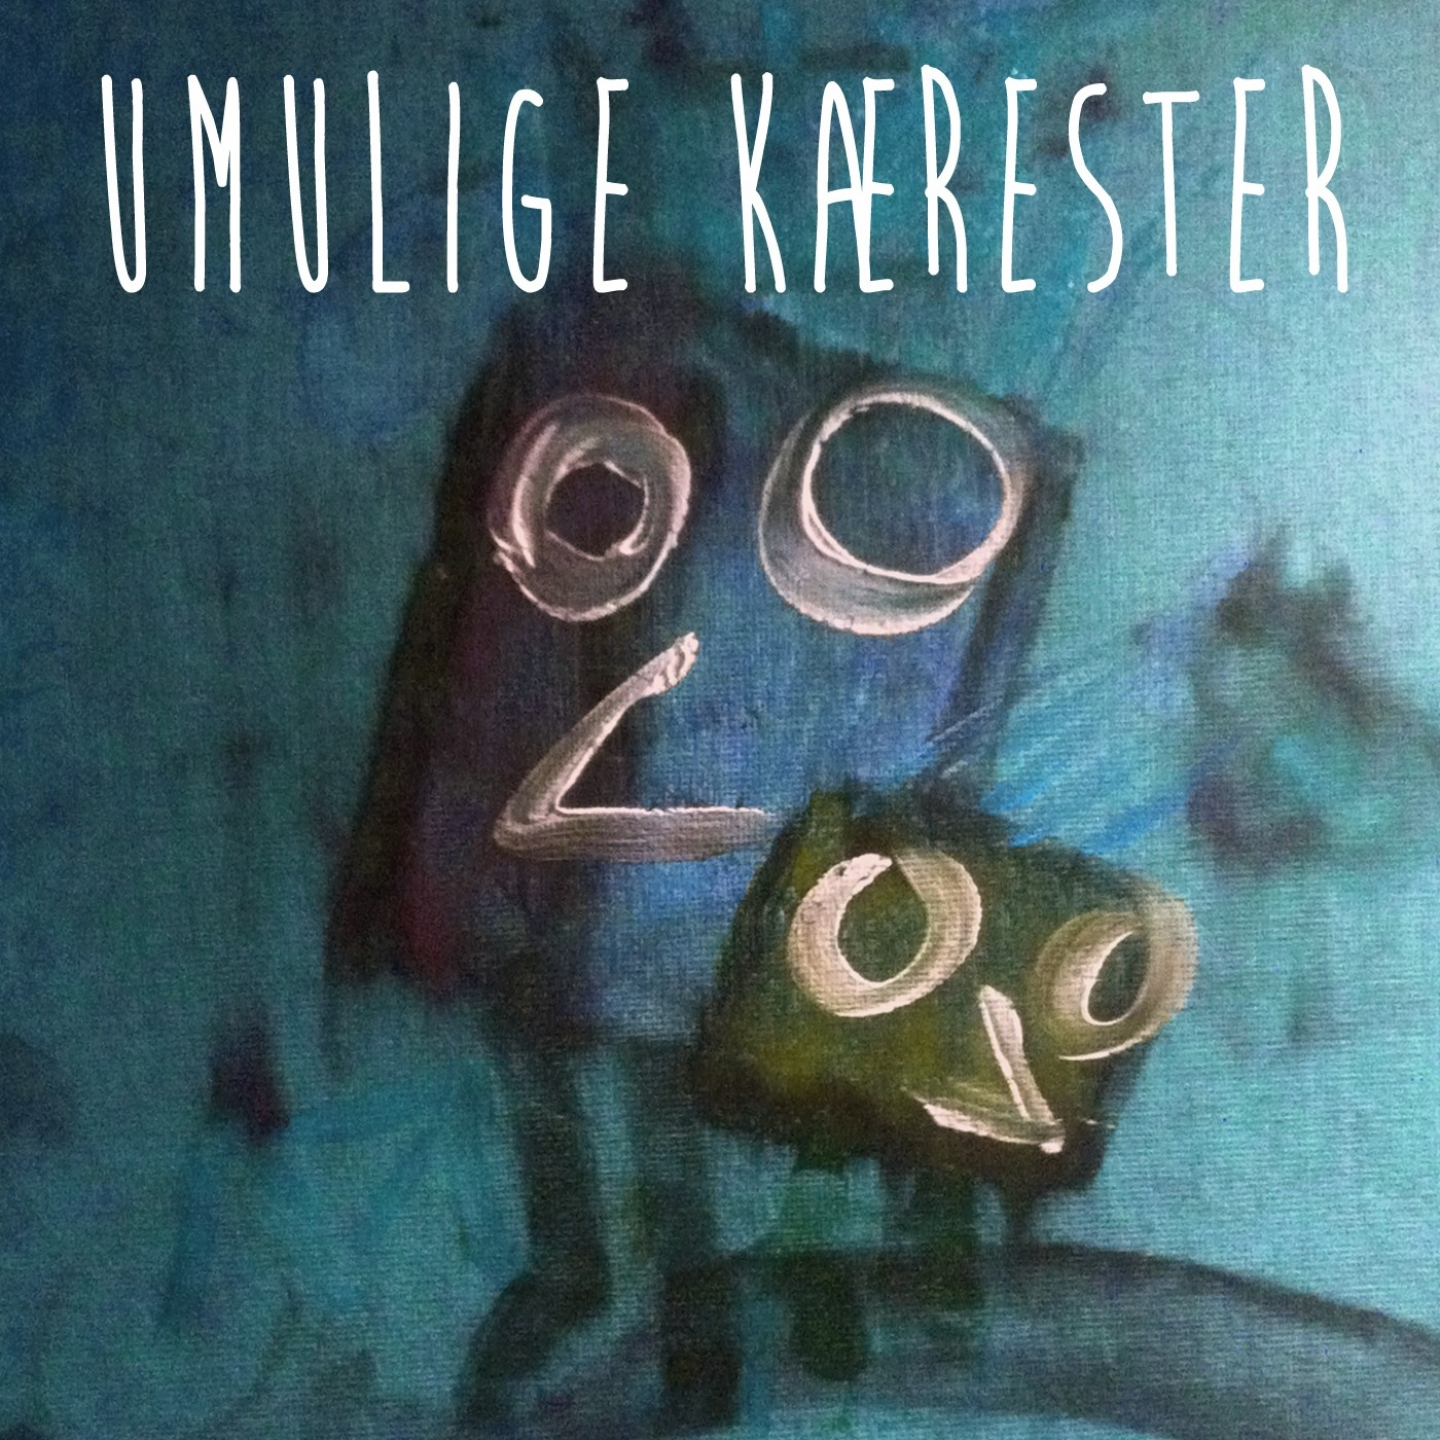 Morten Remar – 'Umulige Kærester' (Single)